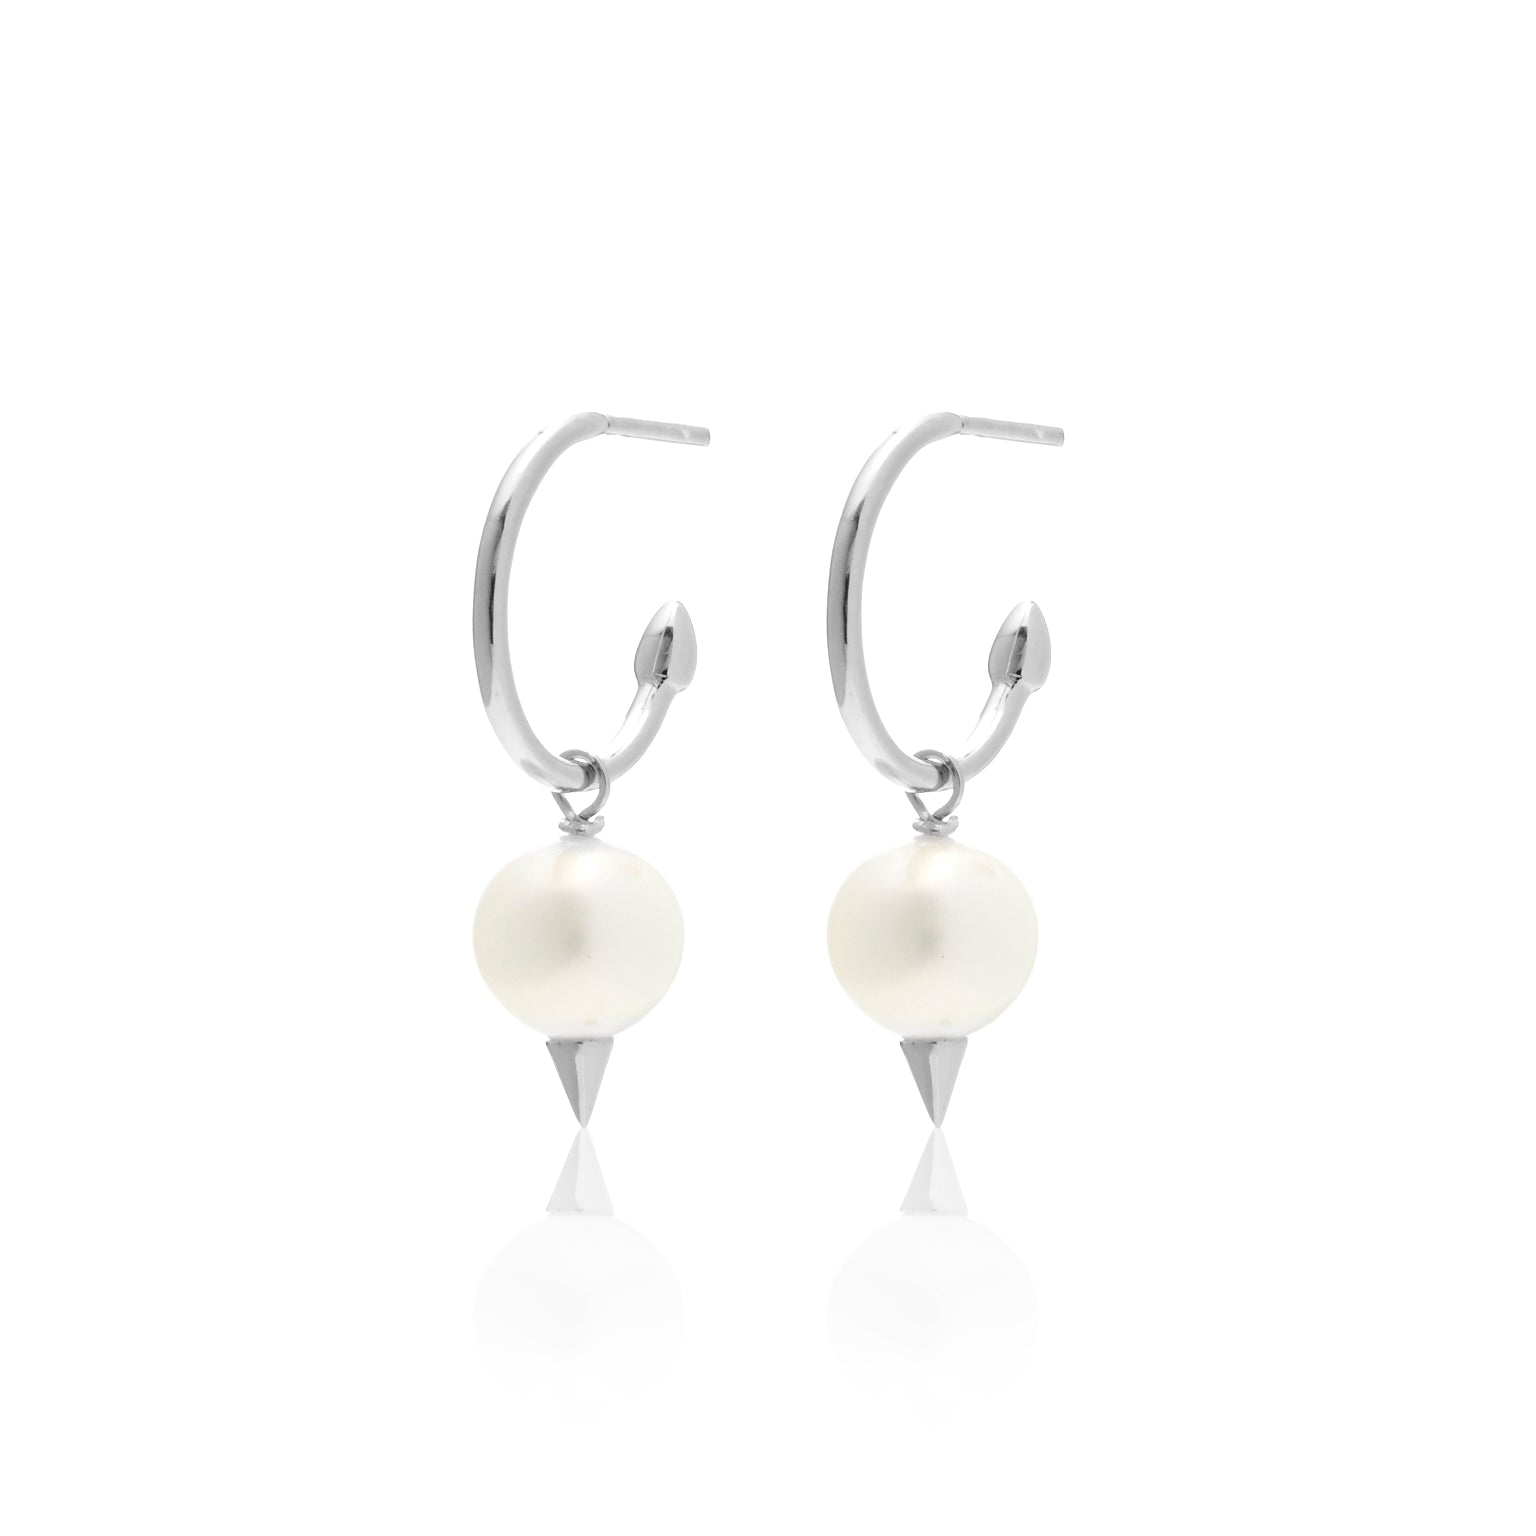 Silk & Steel Revel Earrings Pearl with Spike + Silver